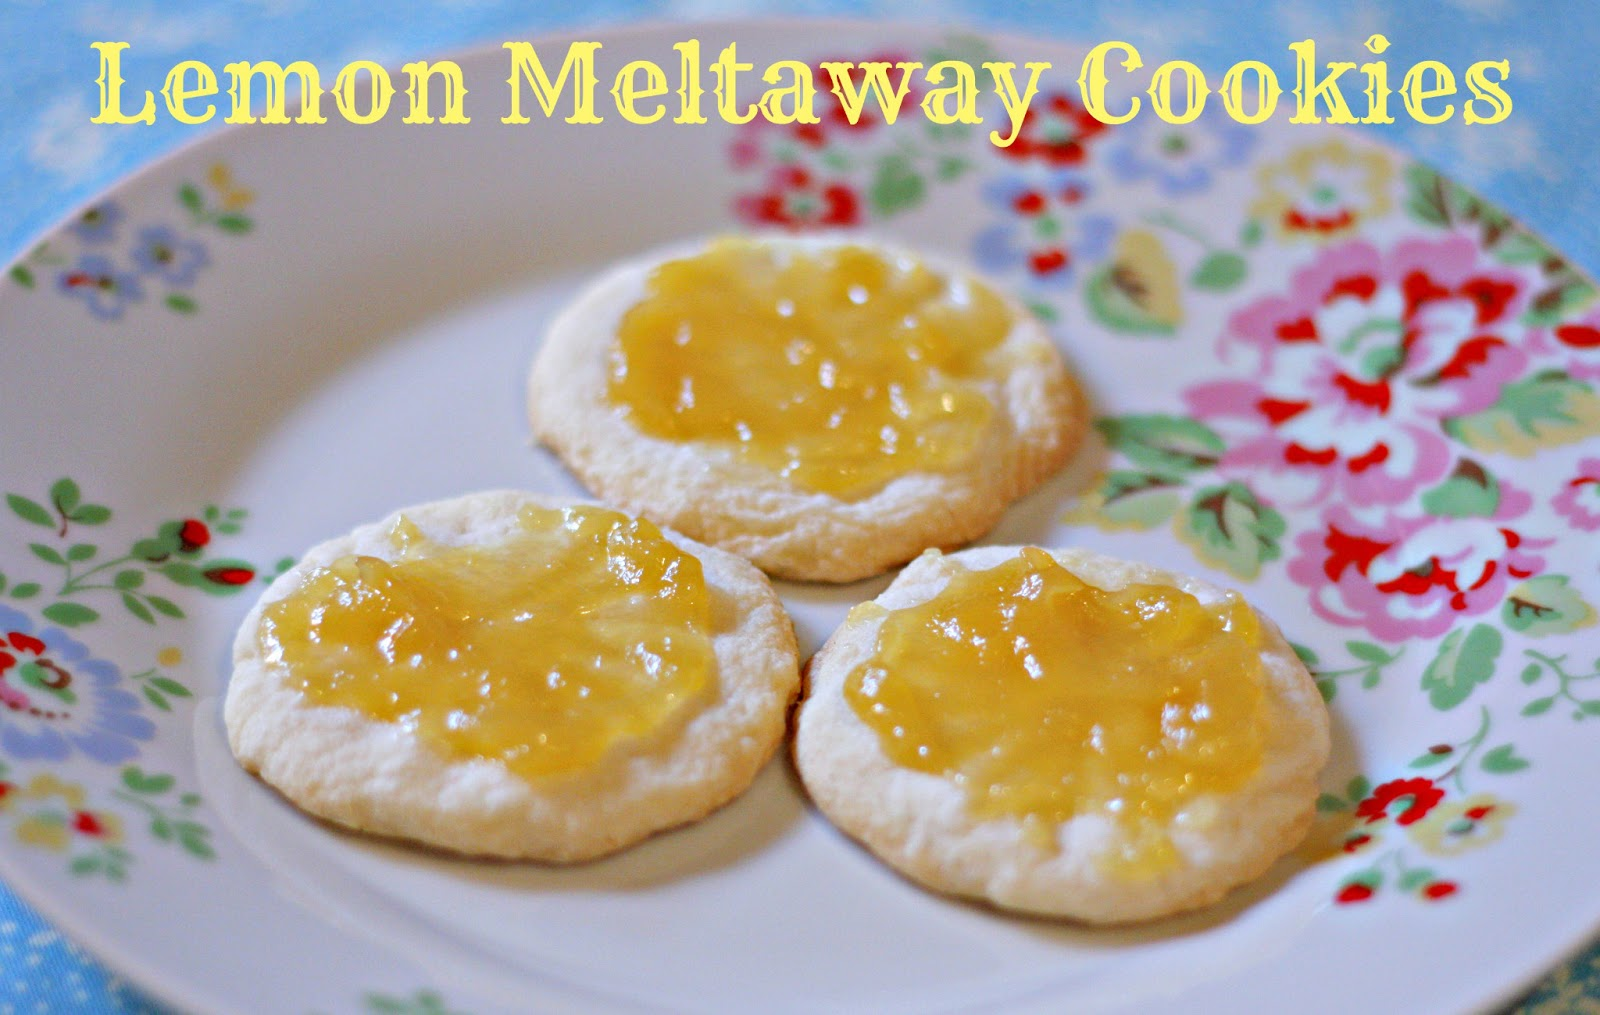 antidote in the form of lemon was lemon meltaway cookies